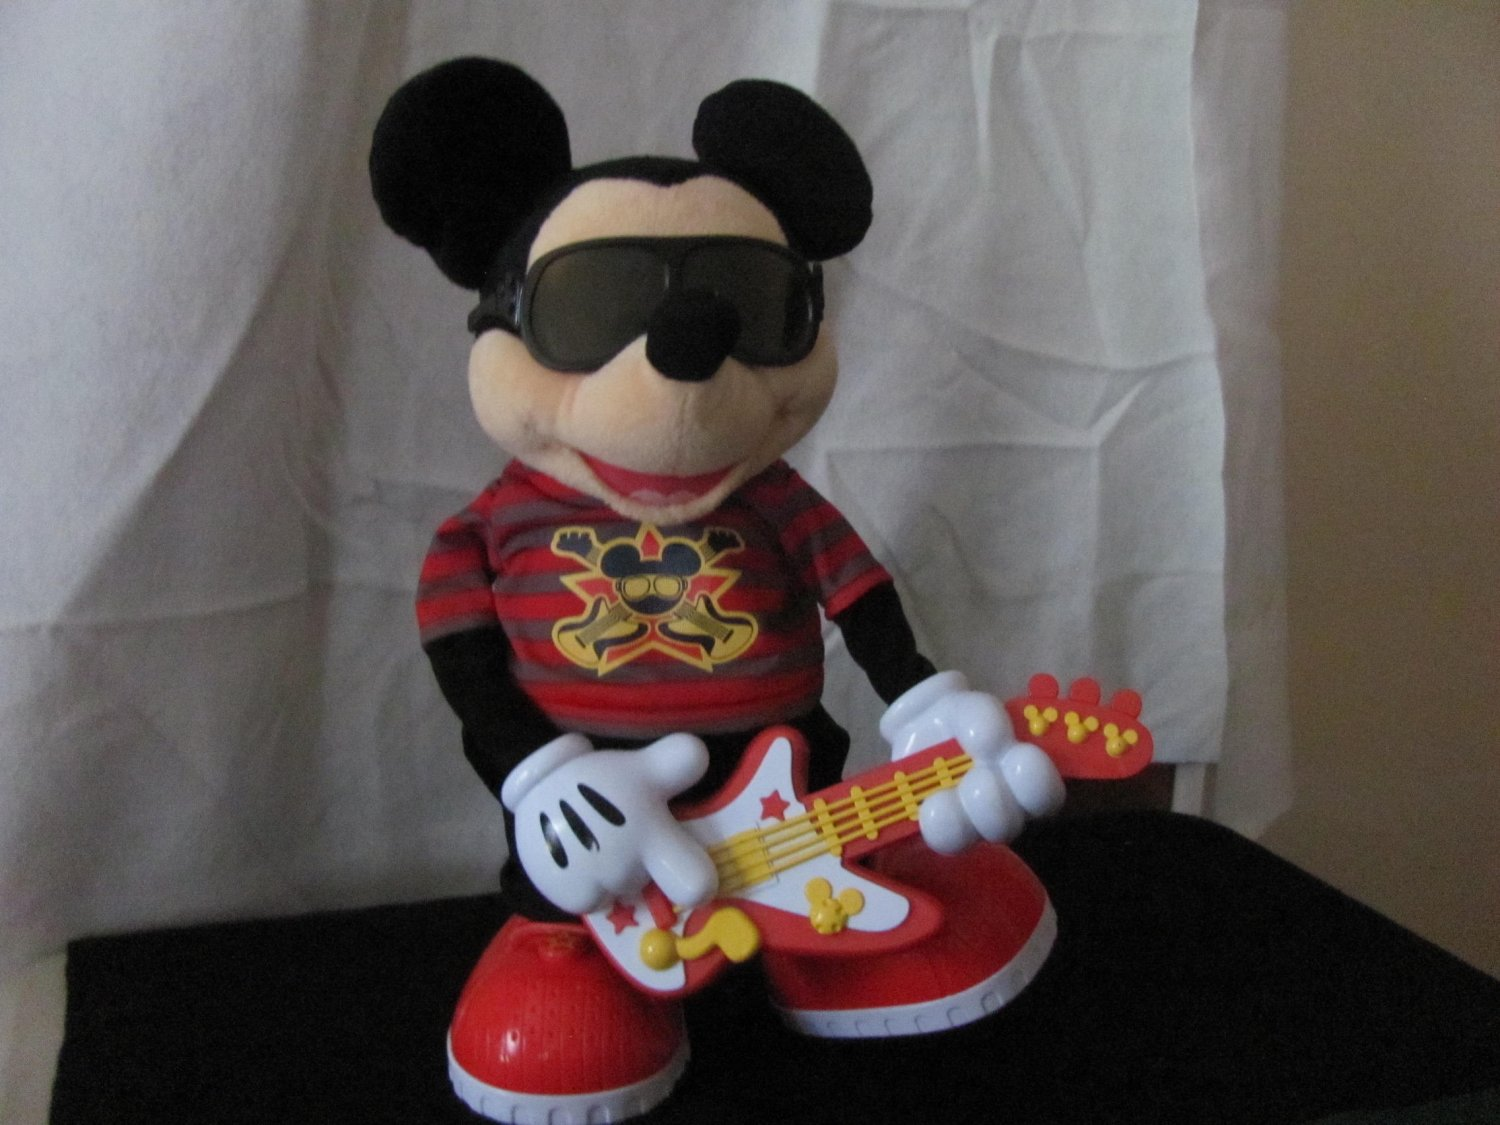 Fisher-Price Disney's Rock Star Mickey Mouse